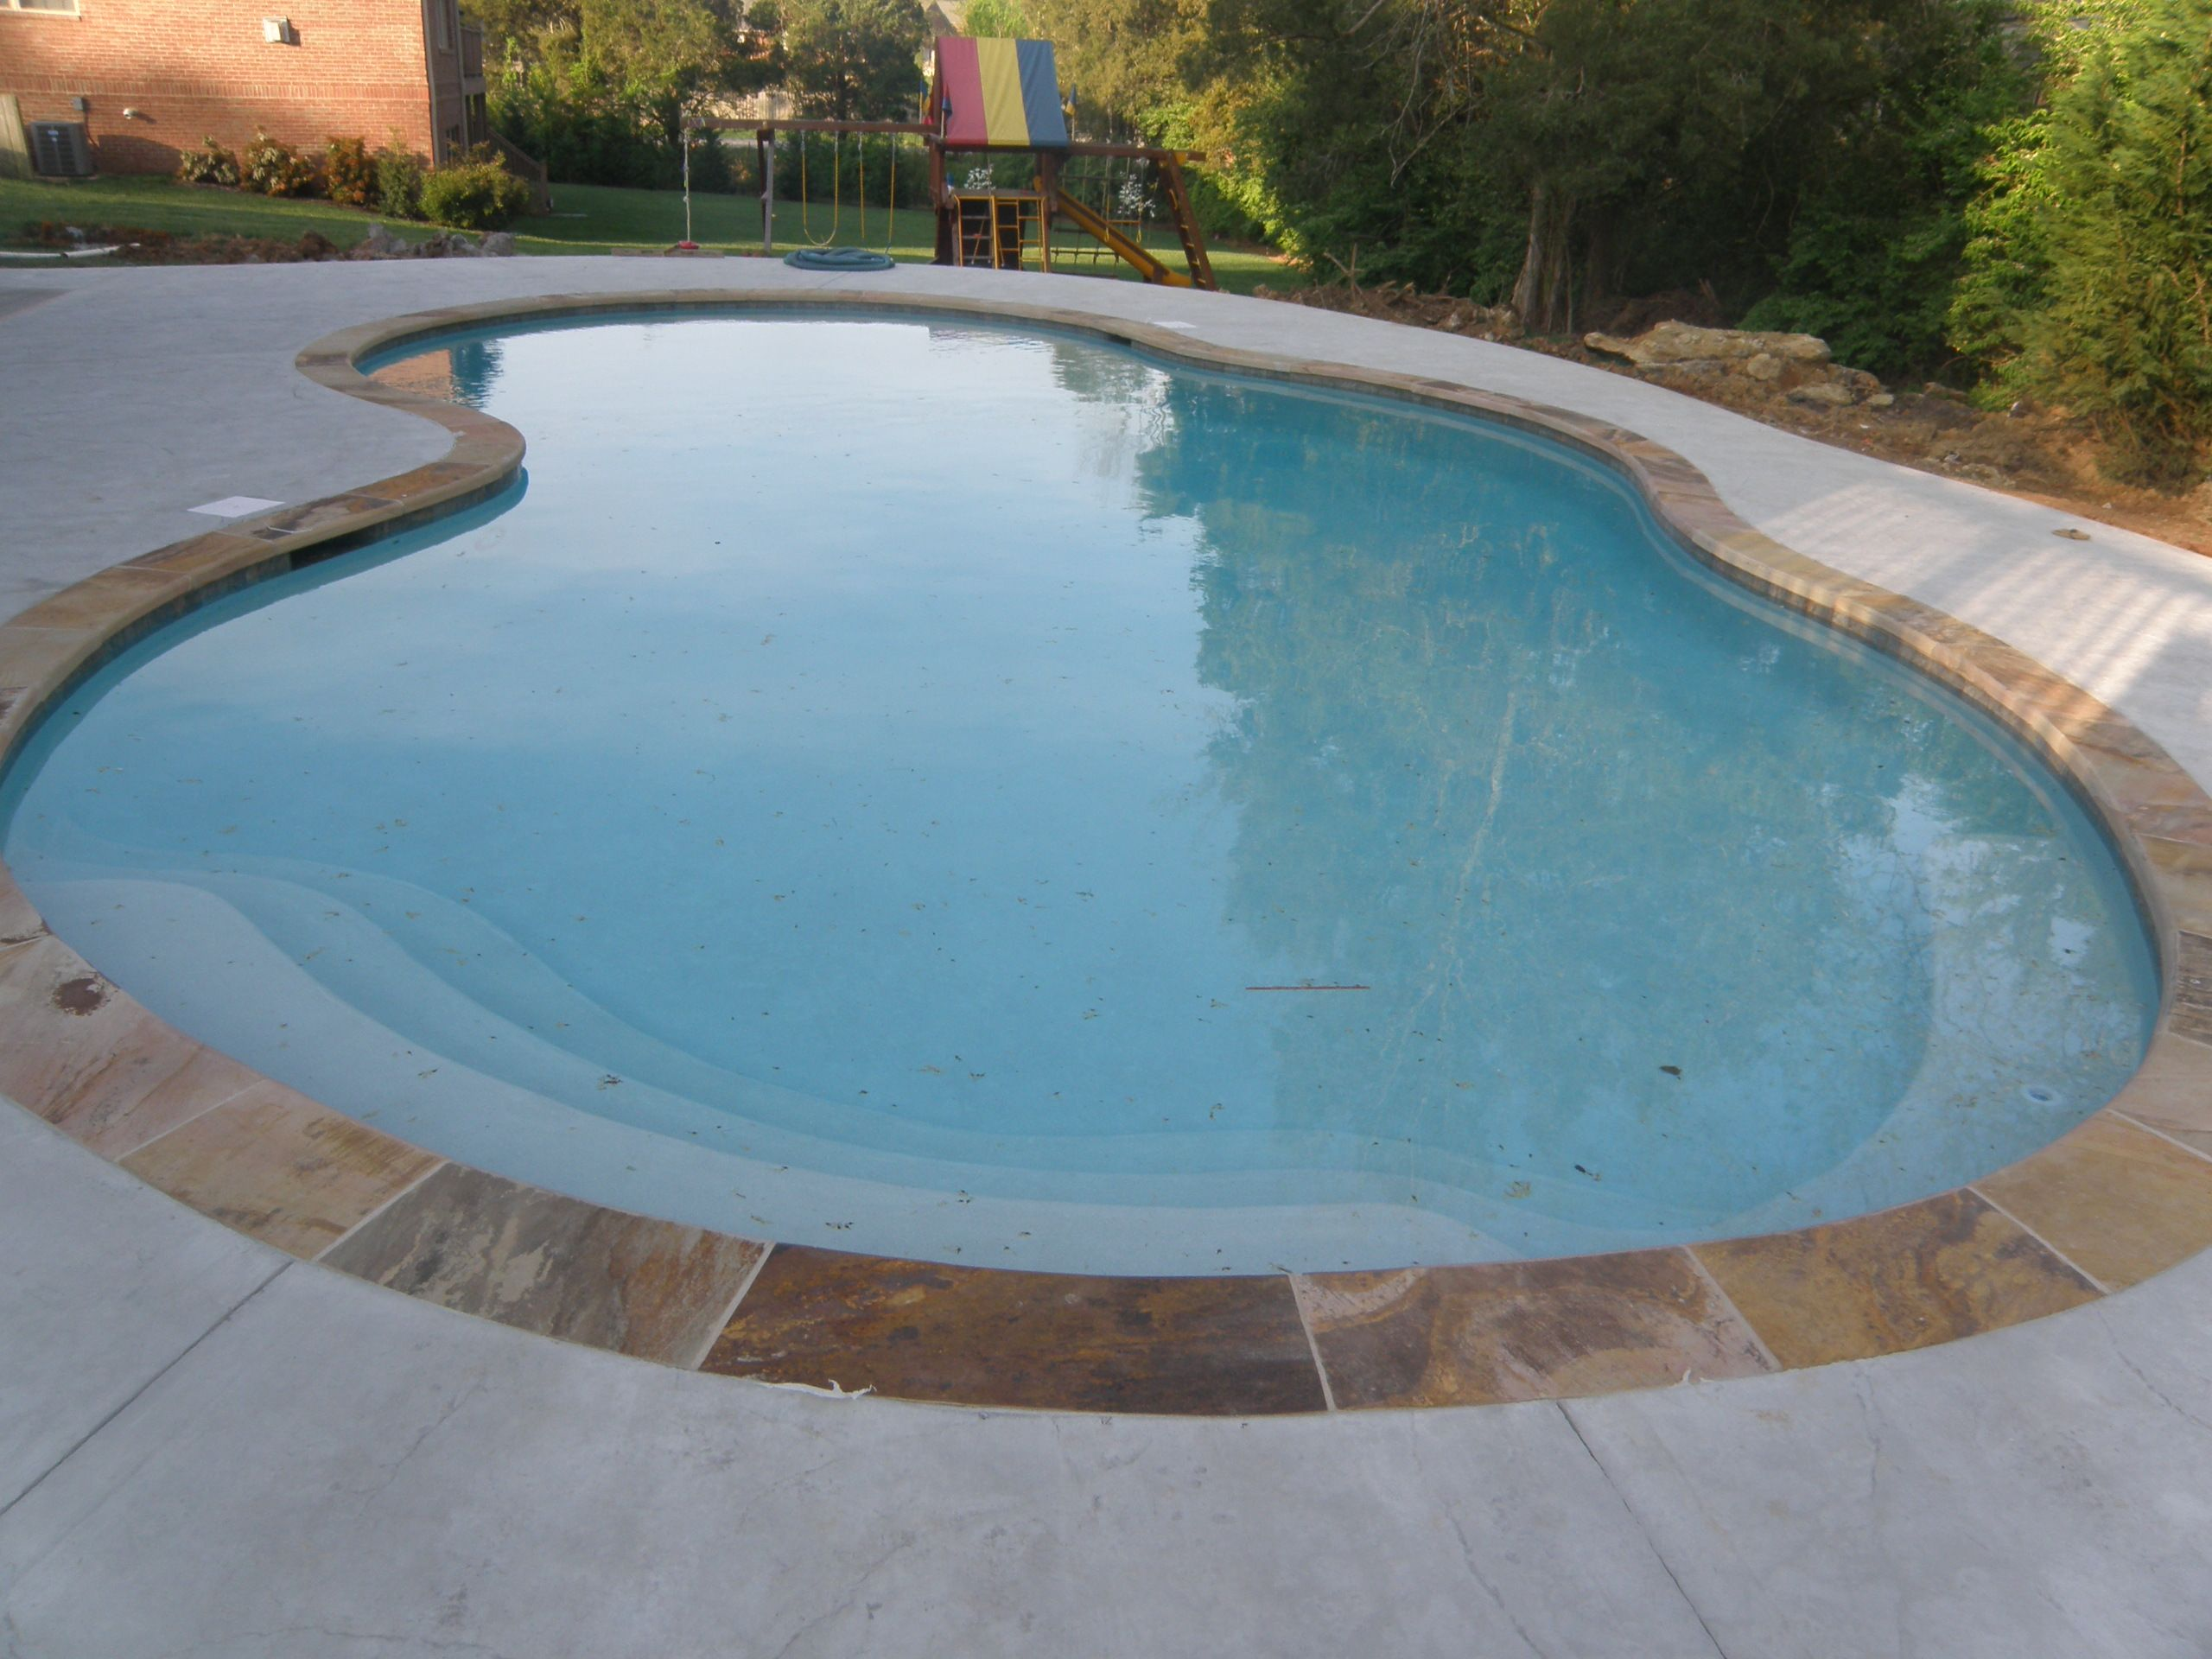 Jacuzzi Pool Top Caps Pool And Hot Tub Coping Gallery The Rock Yard Pools In